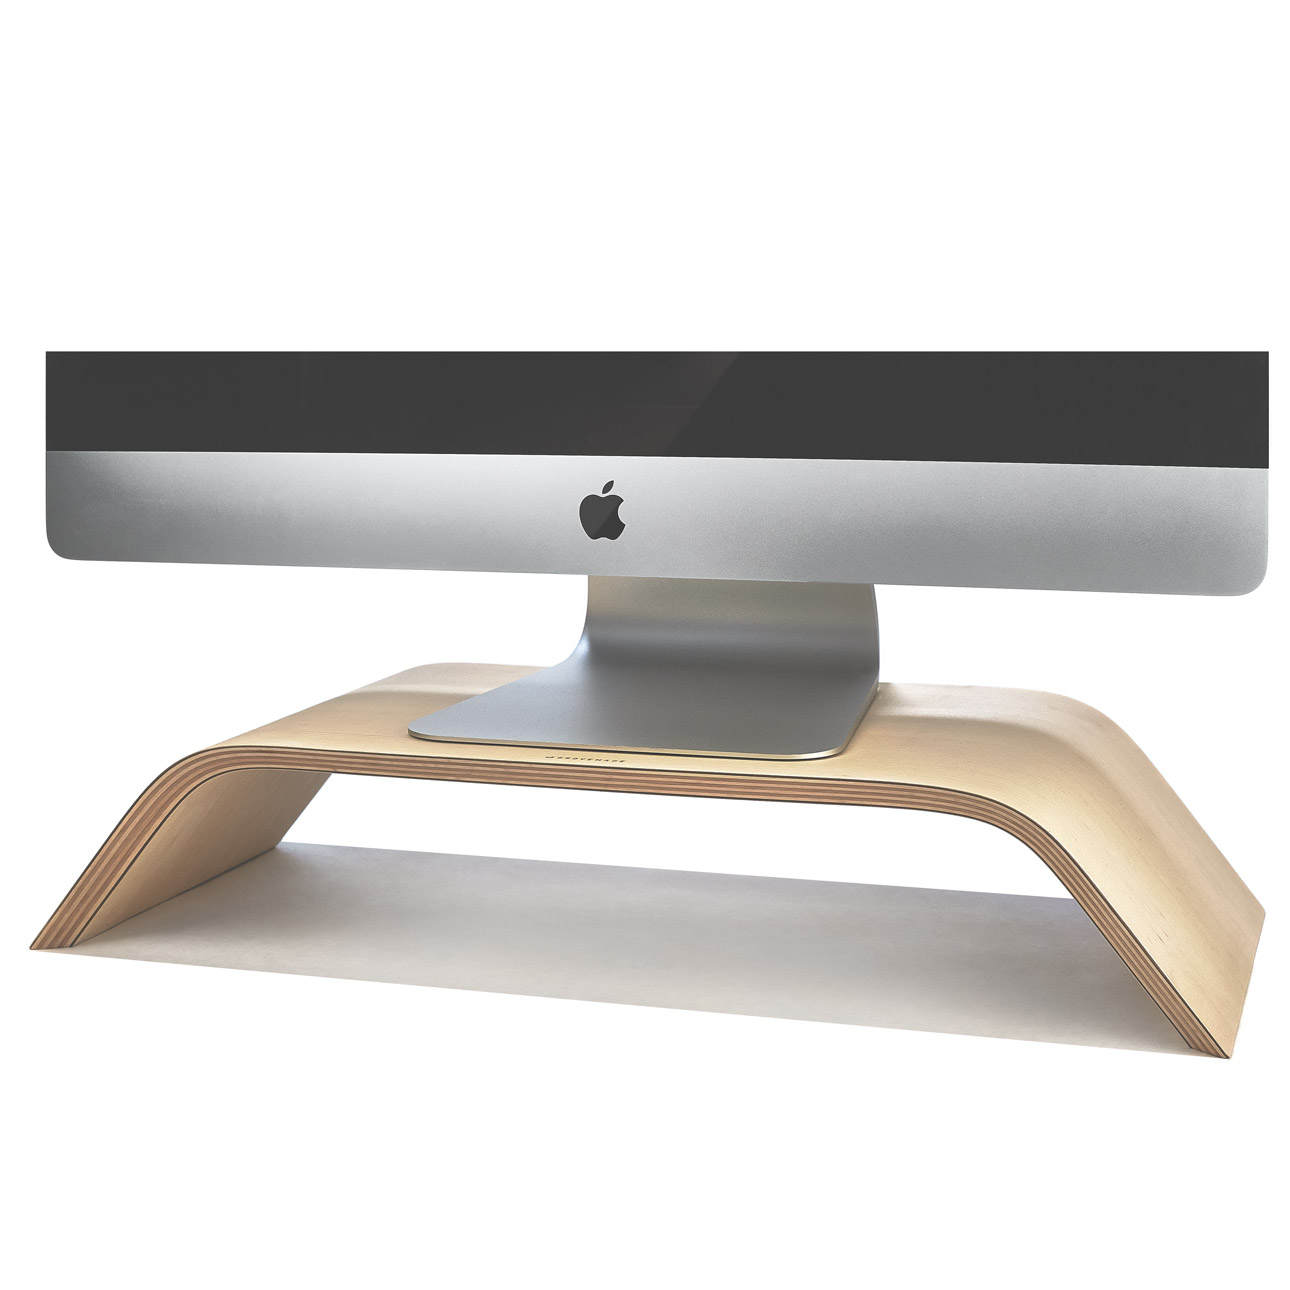 Wood Monitor Stand & iMac Riser in Maple by Grovemade